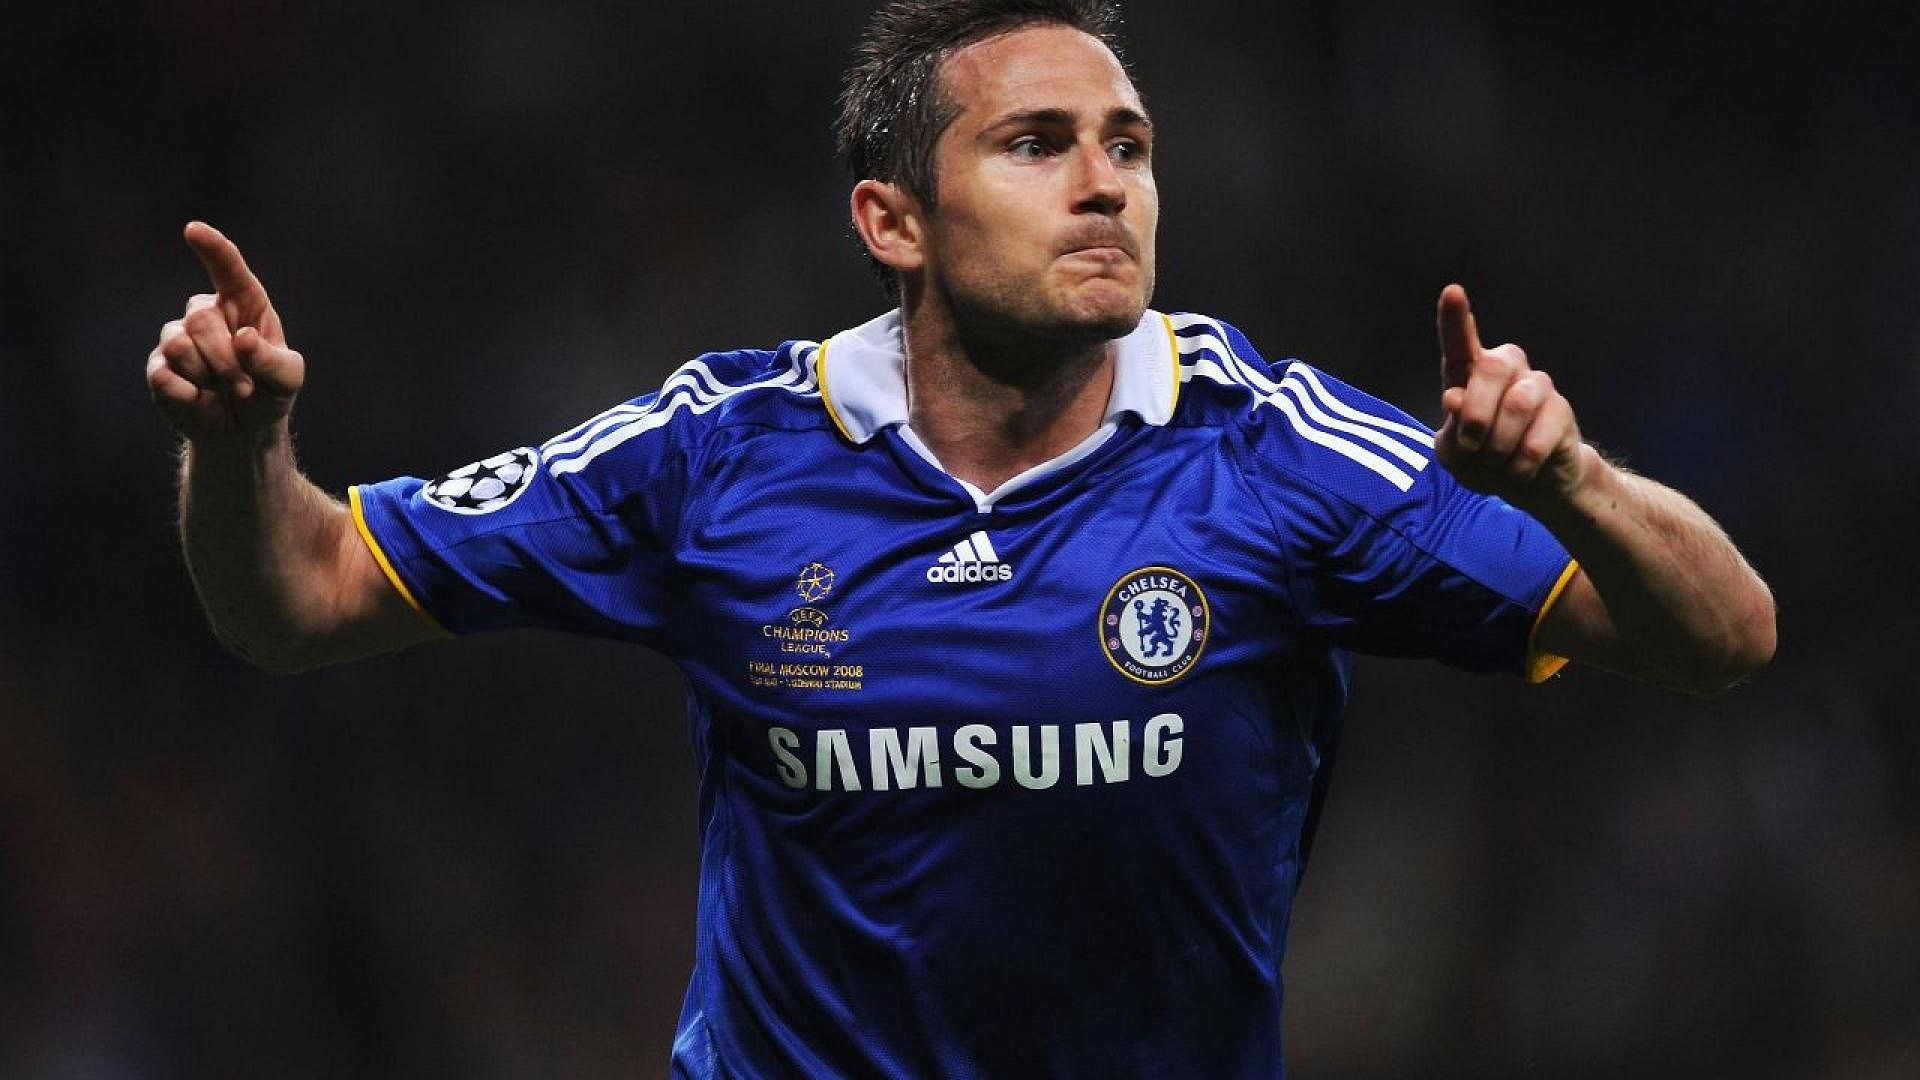 Frank Lampard: A true legend or a so-called traitor?